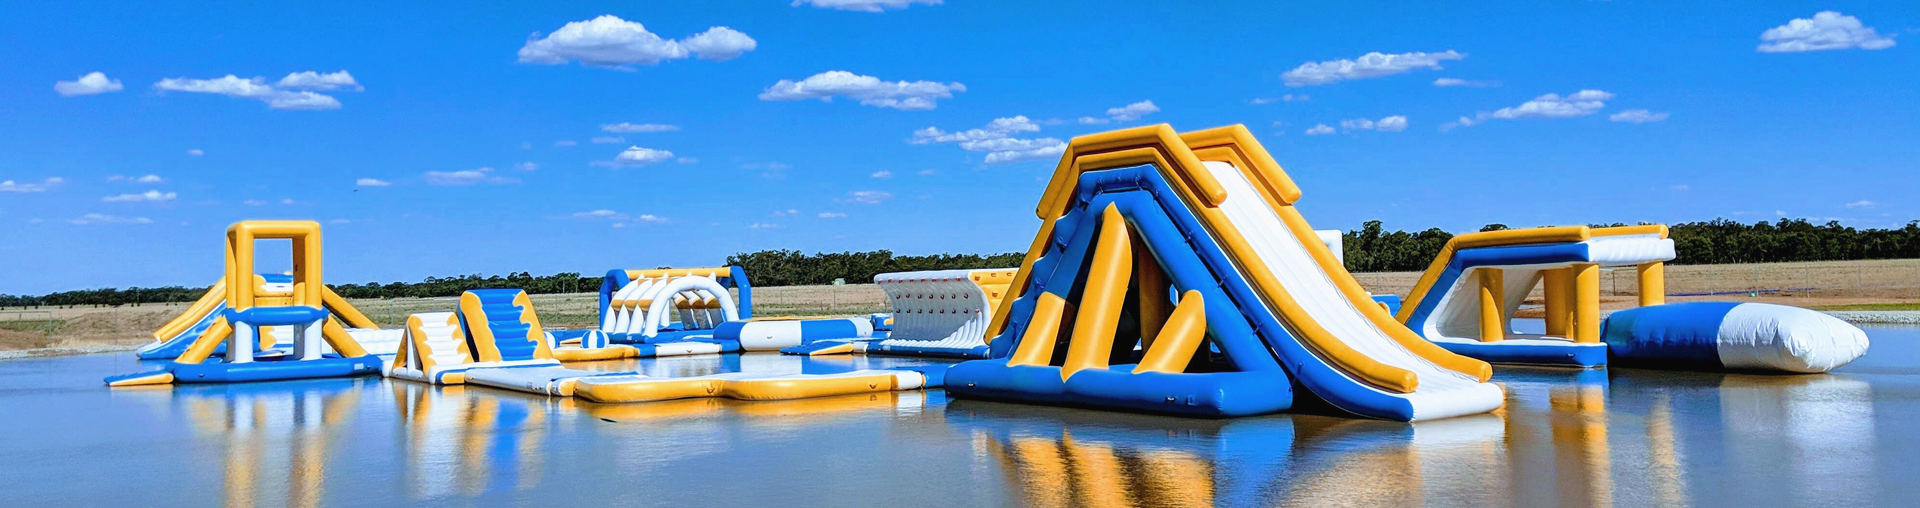 application-inflatable water parks-floating water park-inflatable water playground-Bouncia-img